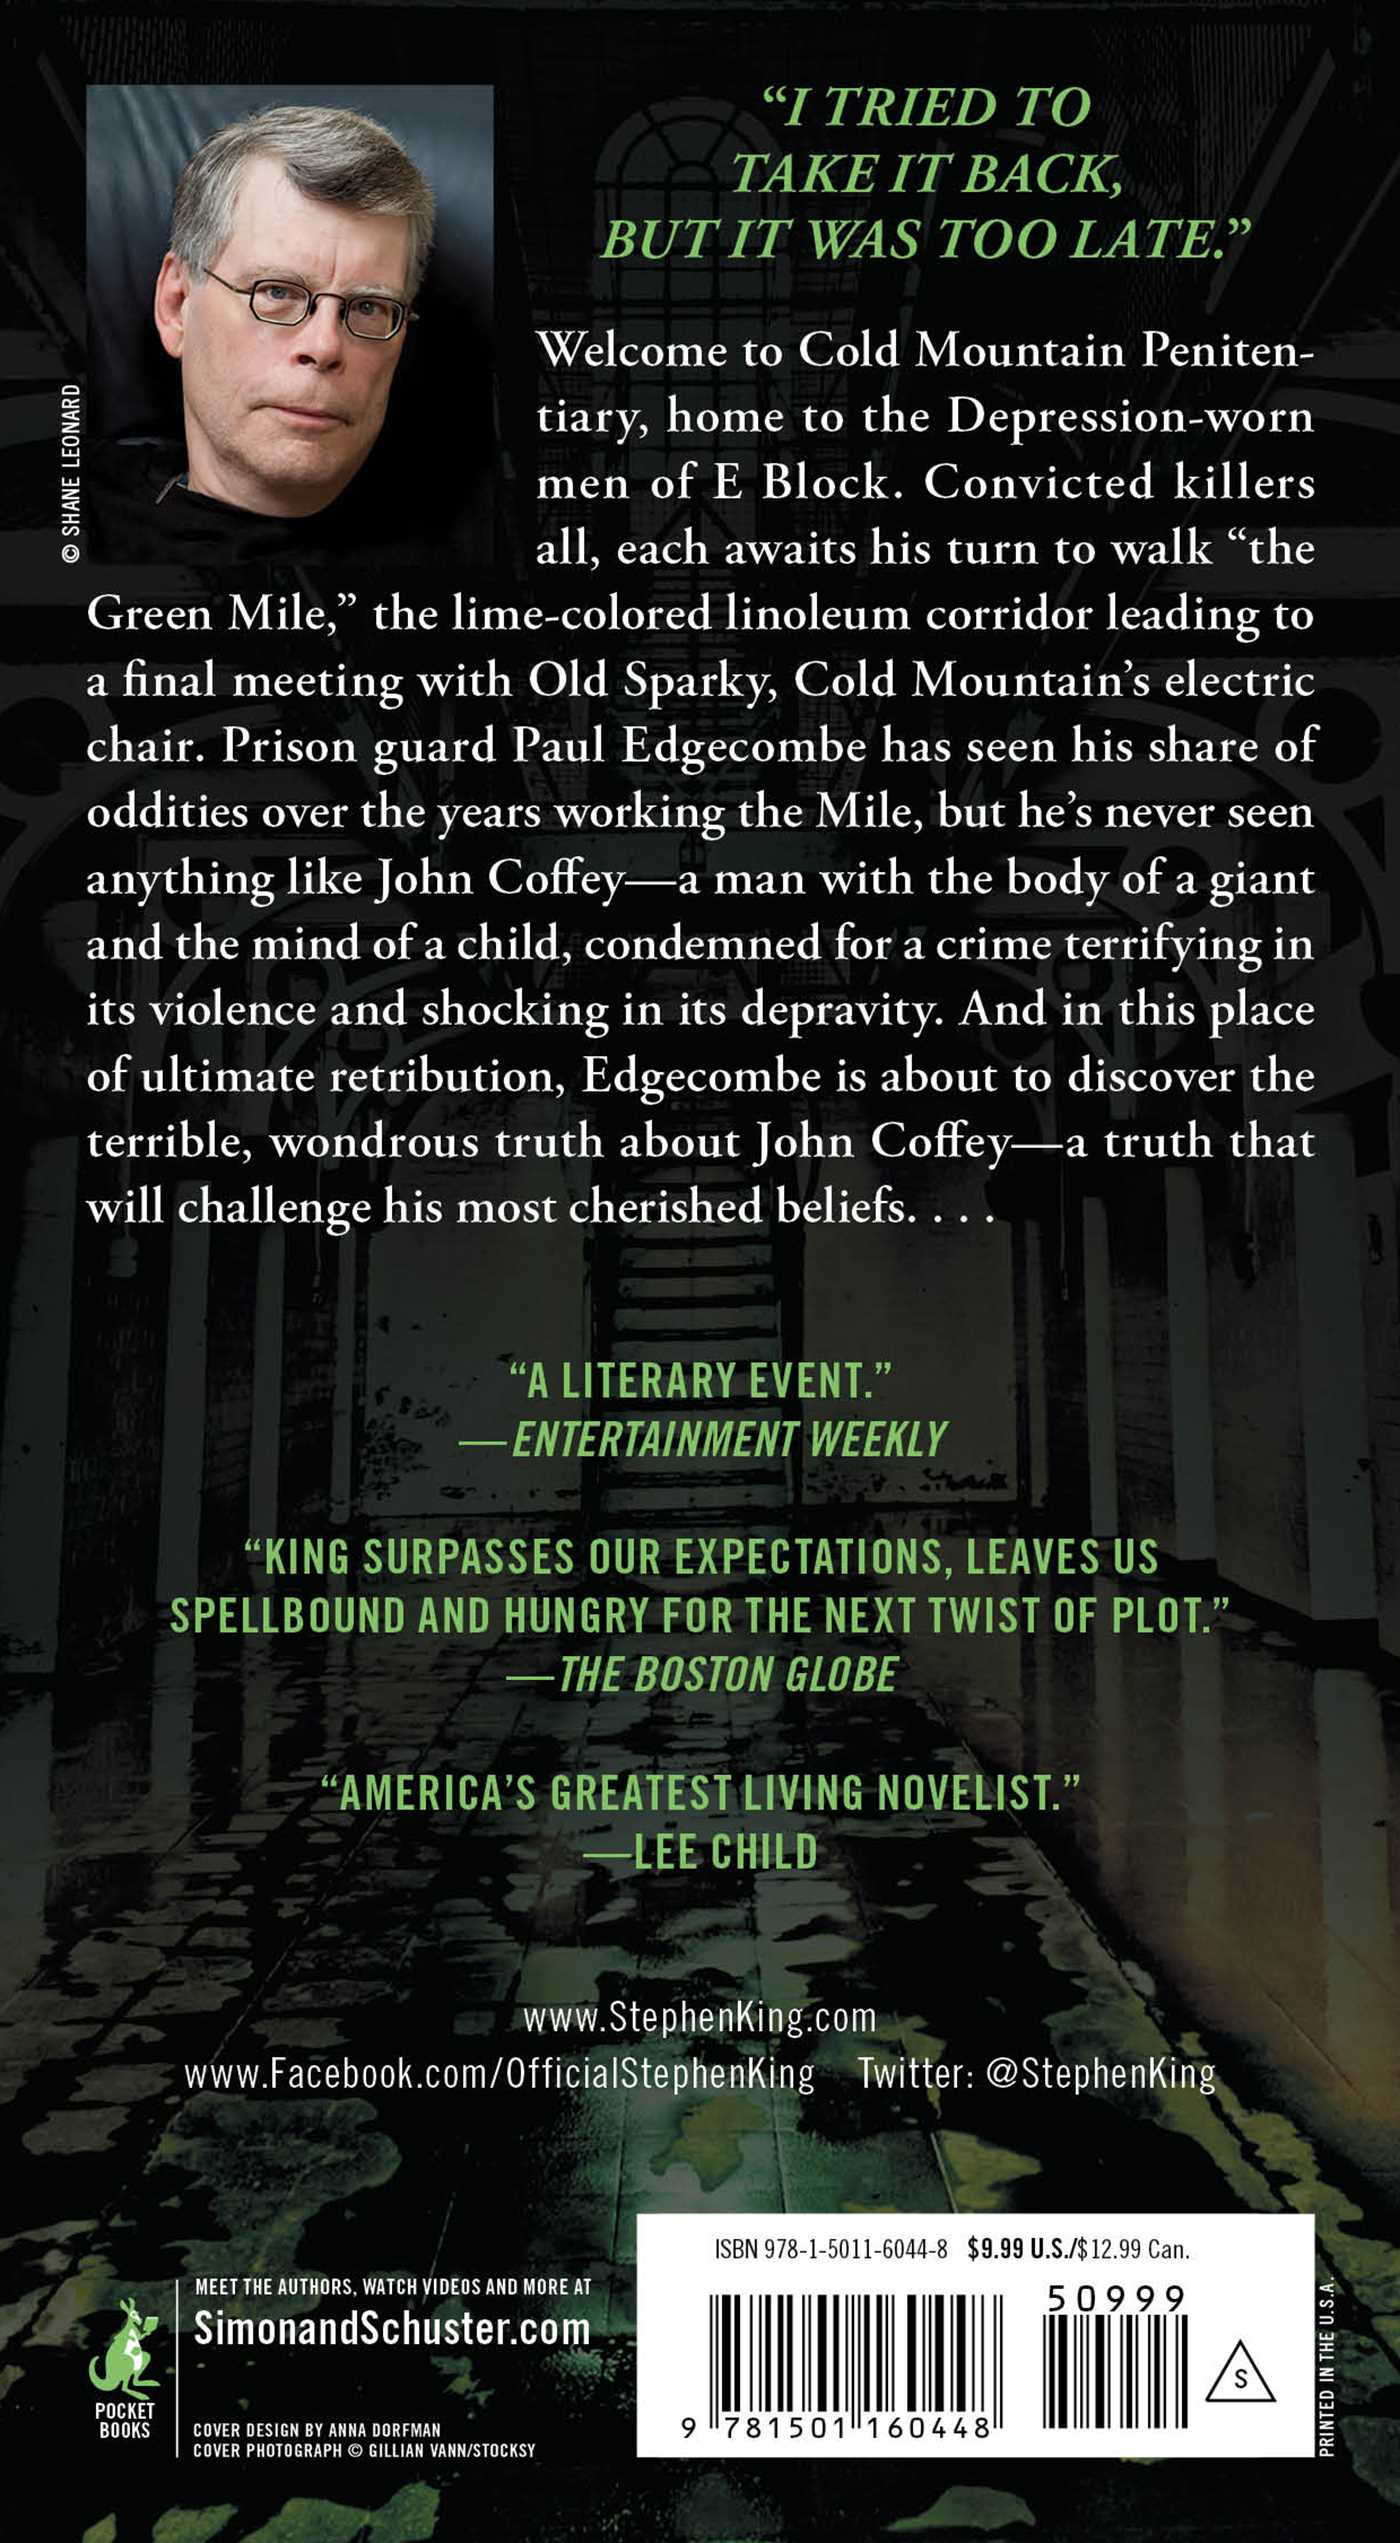 The green mile 9781501160448 hr back